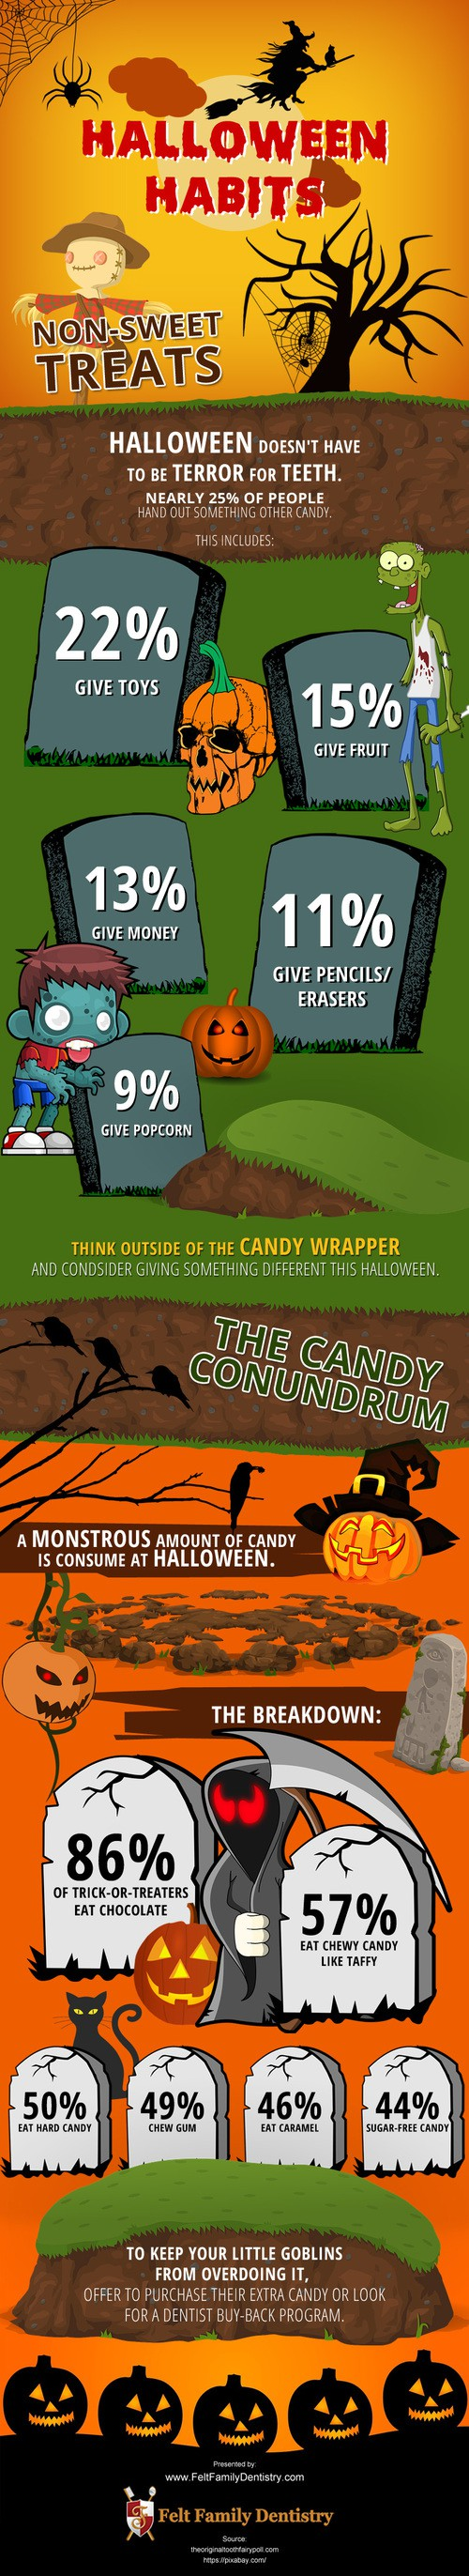 Halloween Habits [infographic]